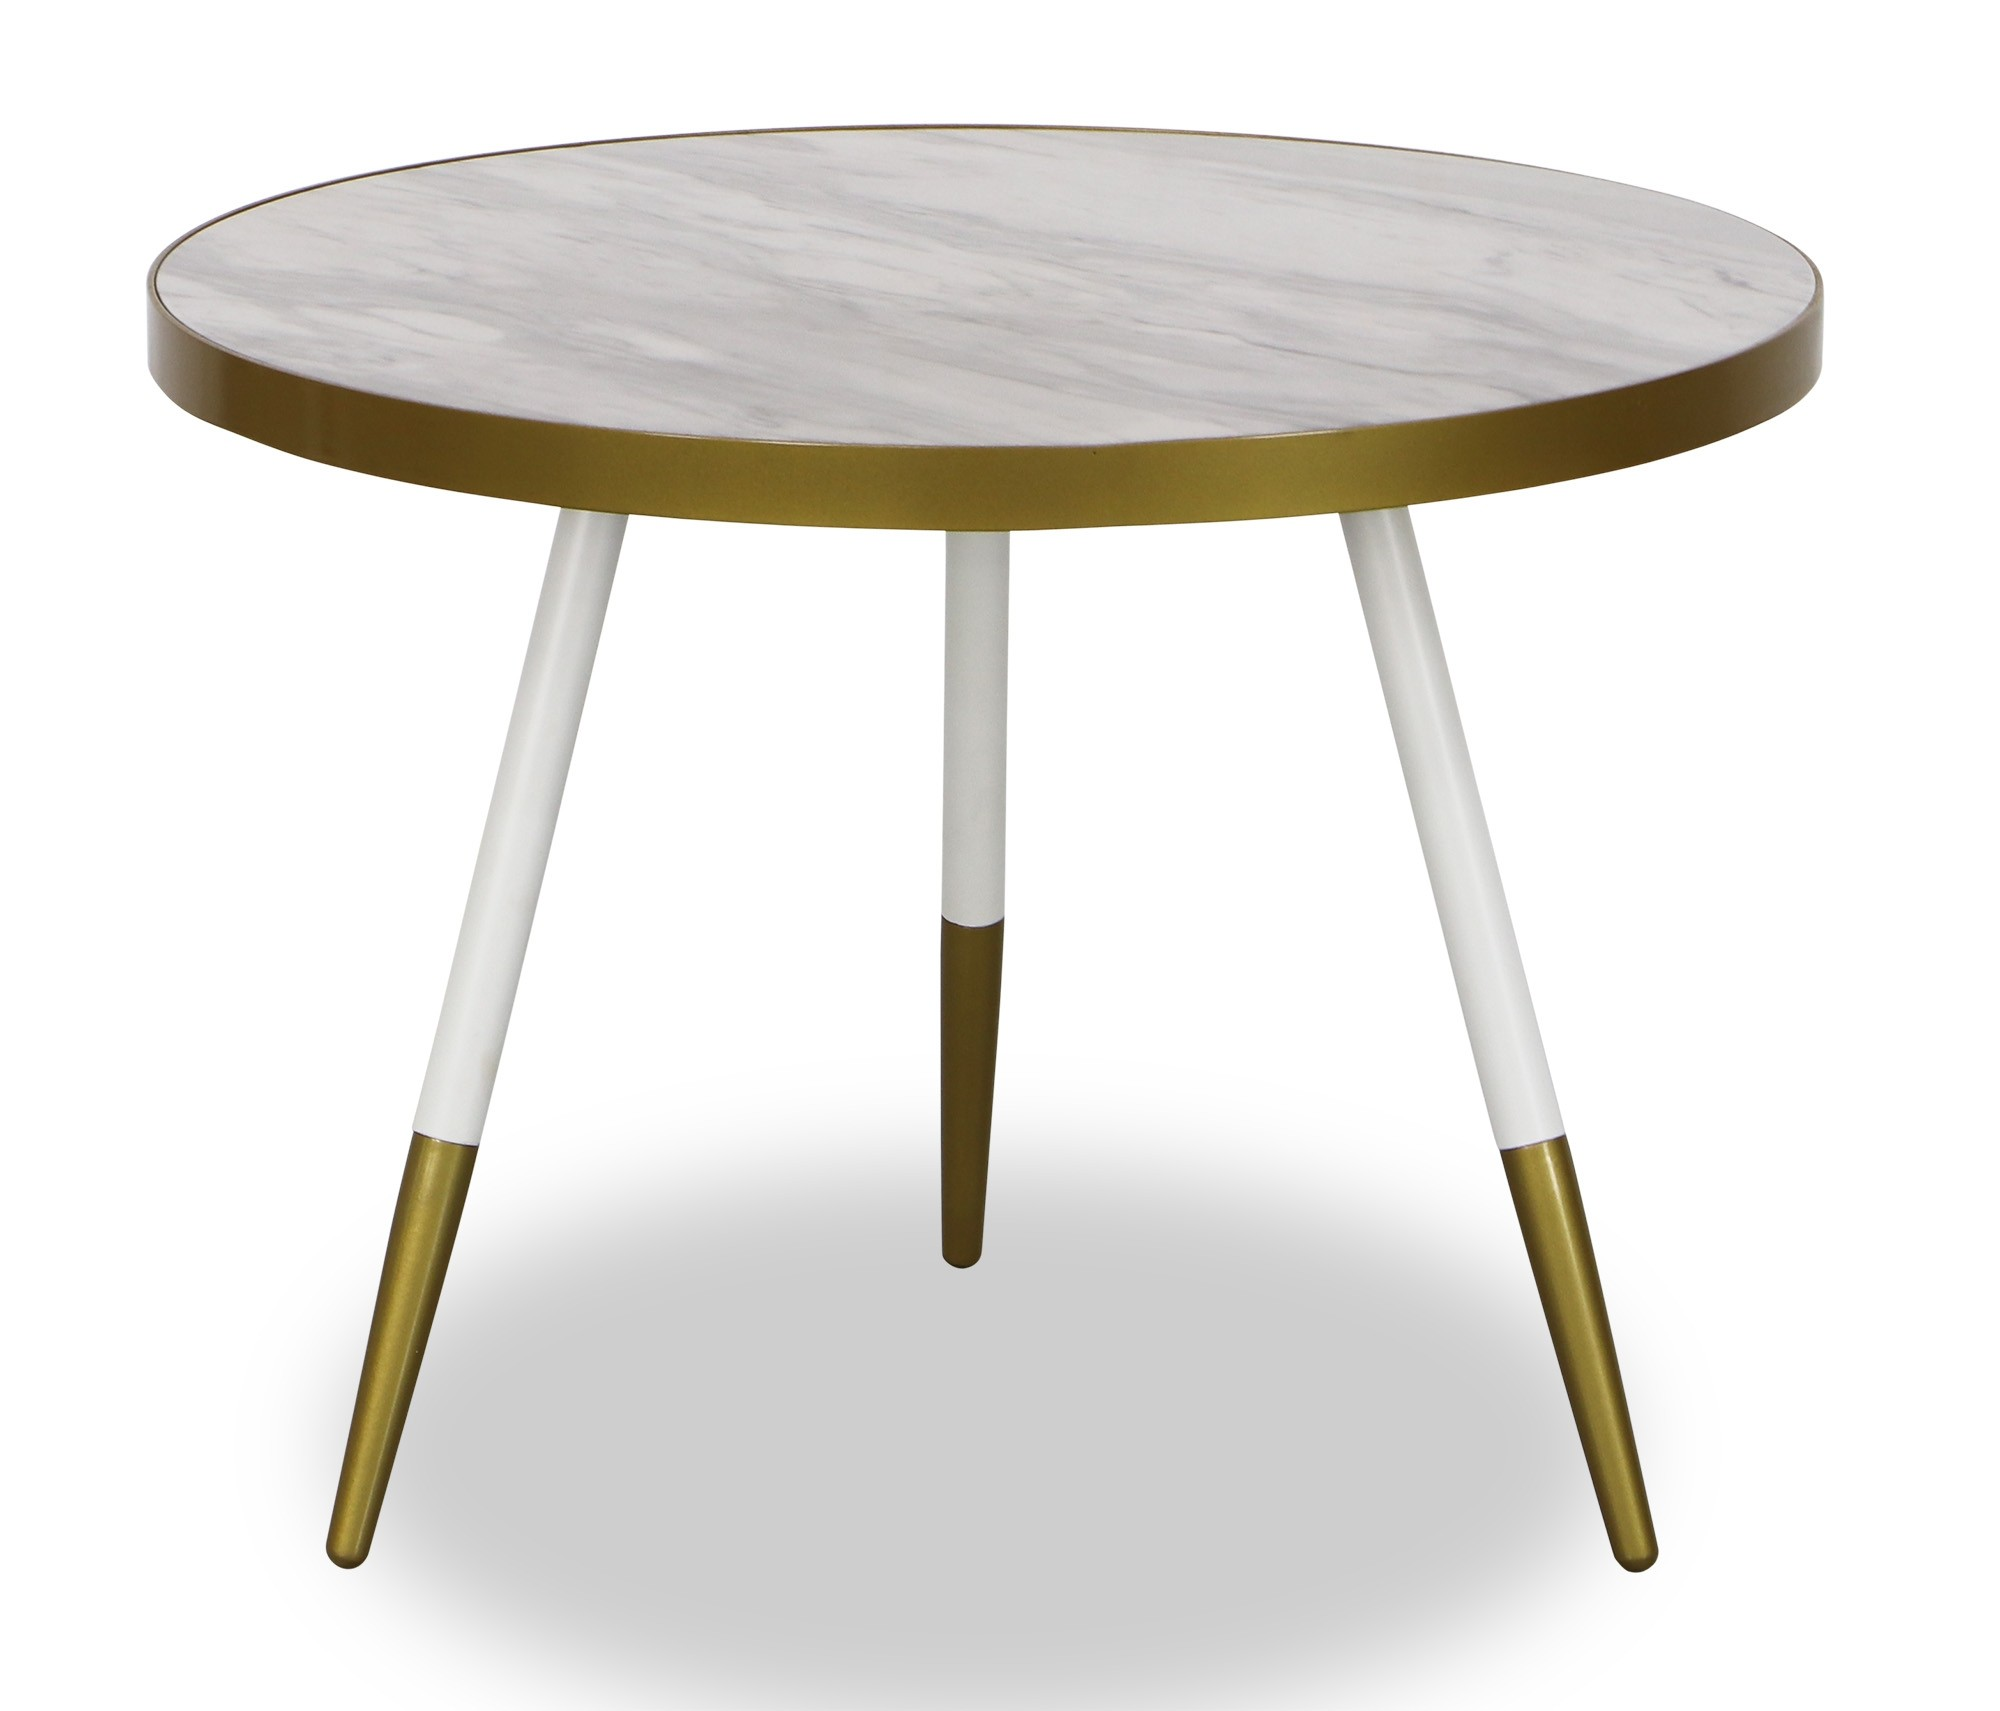 Marble Coffee Table In Singapore: Paloma Coffee Table In White Marble